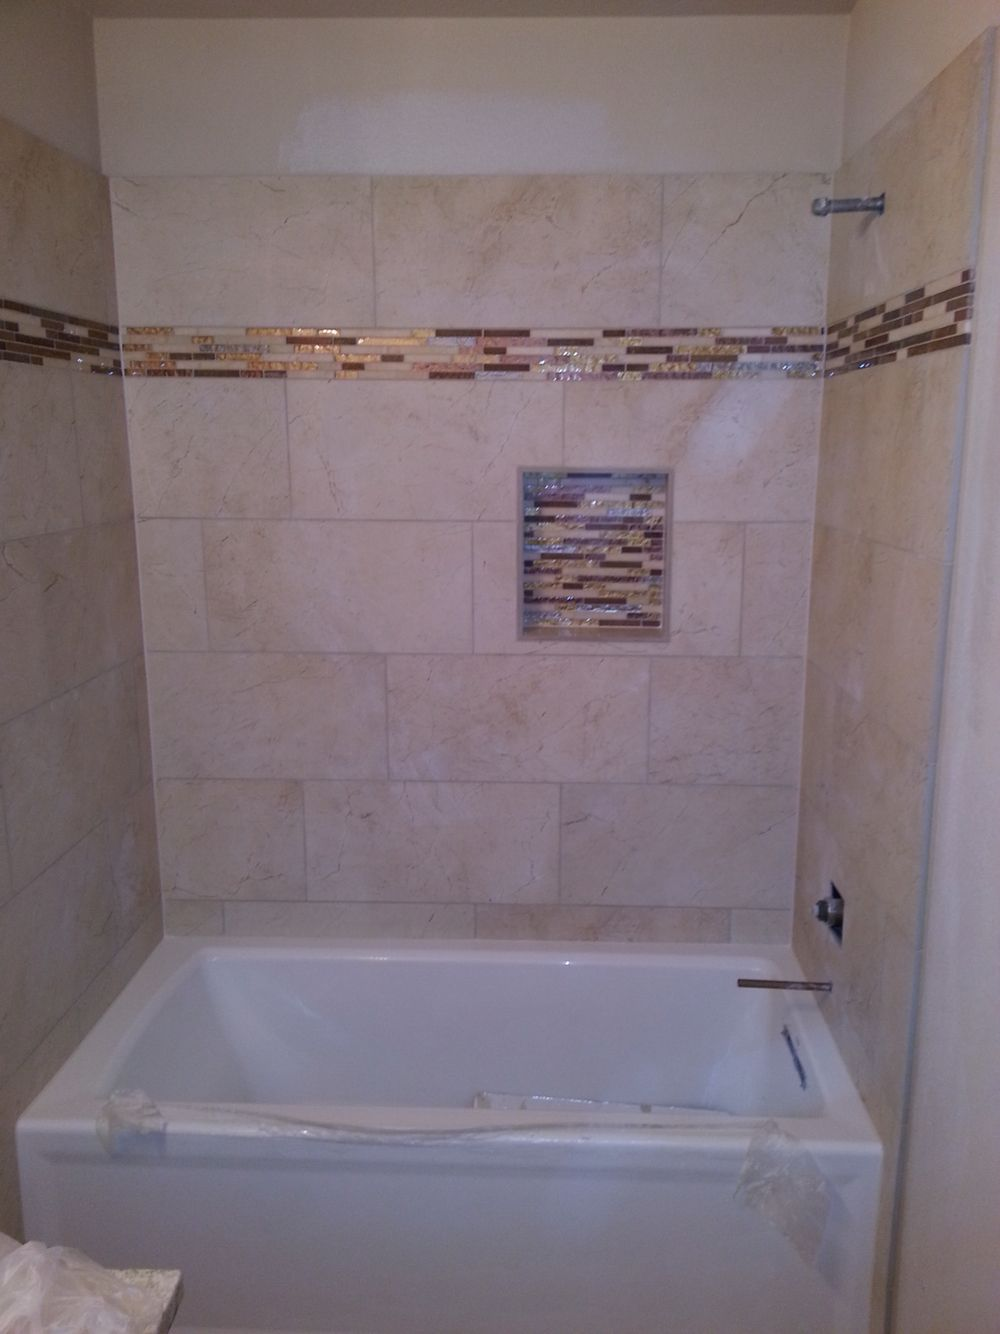 Atx tile built tub surround 12x24 inch tile stacked on for Tile shower surround